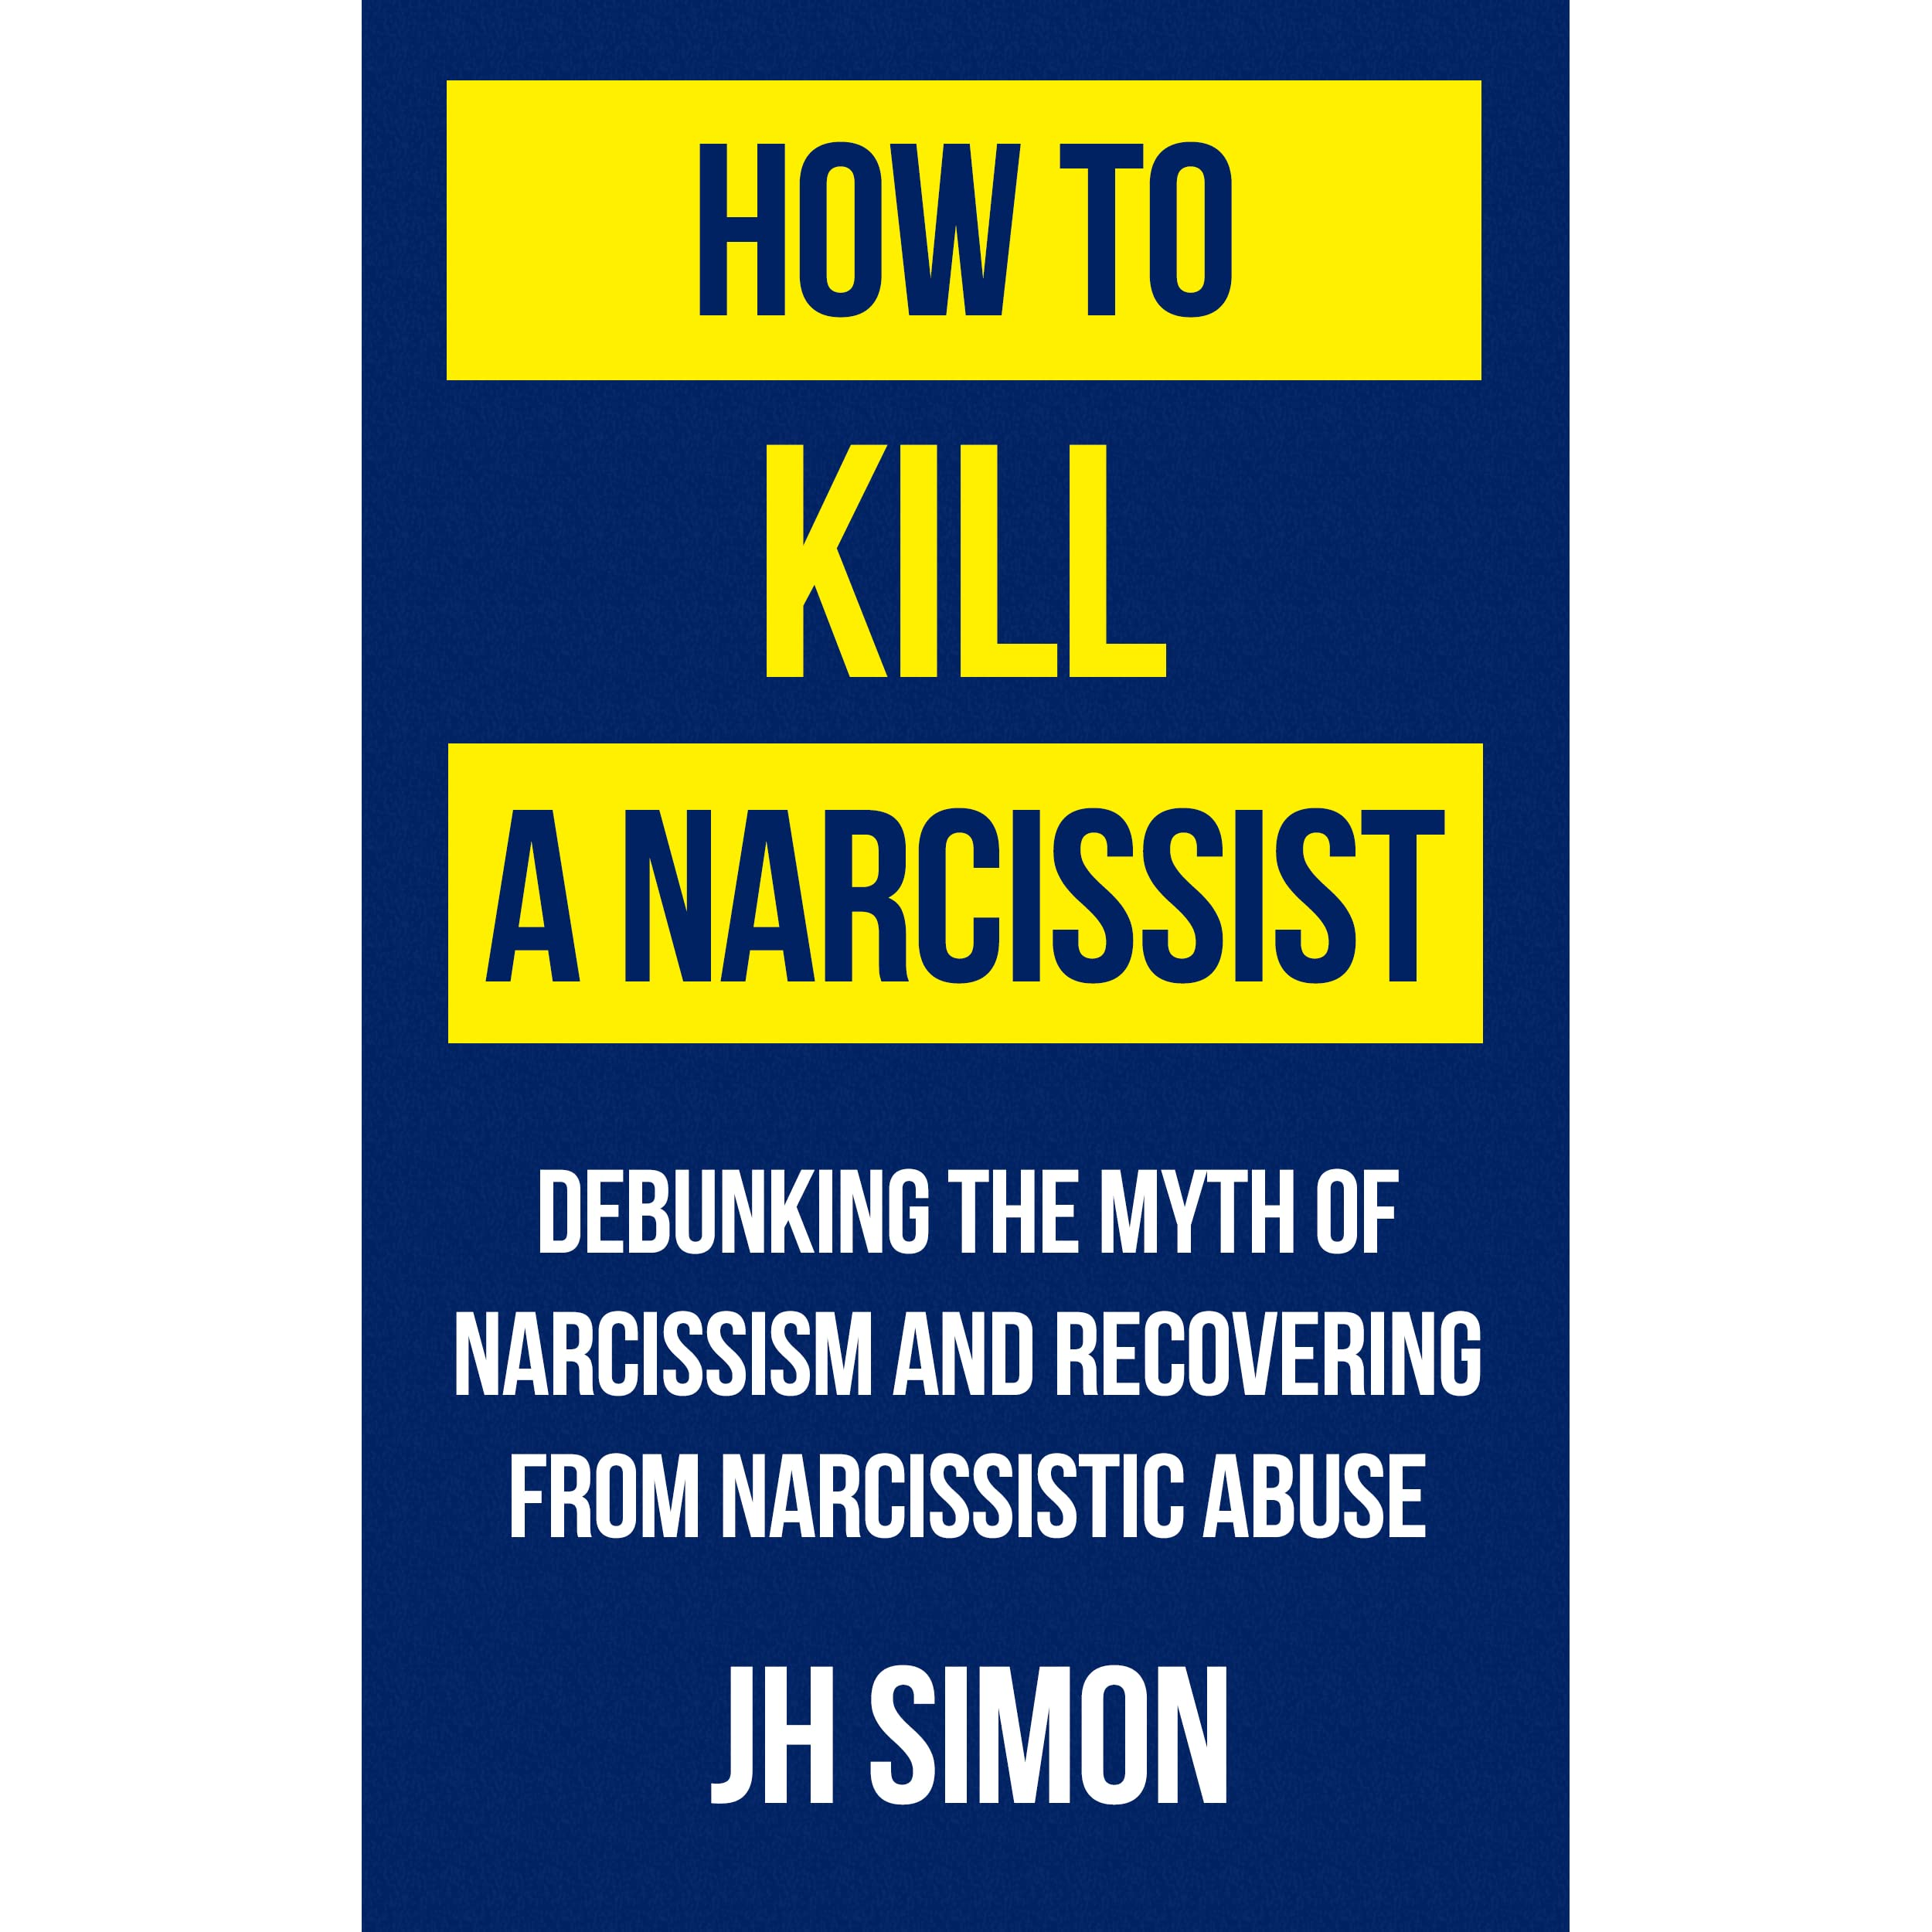 How To Kill A Narcissist: Debunking The Myth Of Narcissism